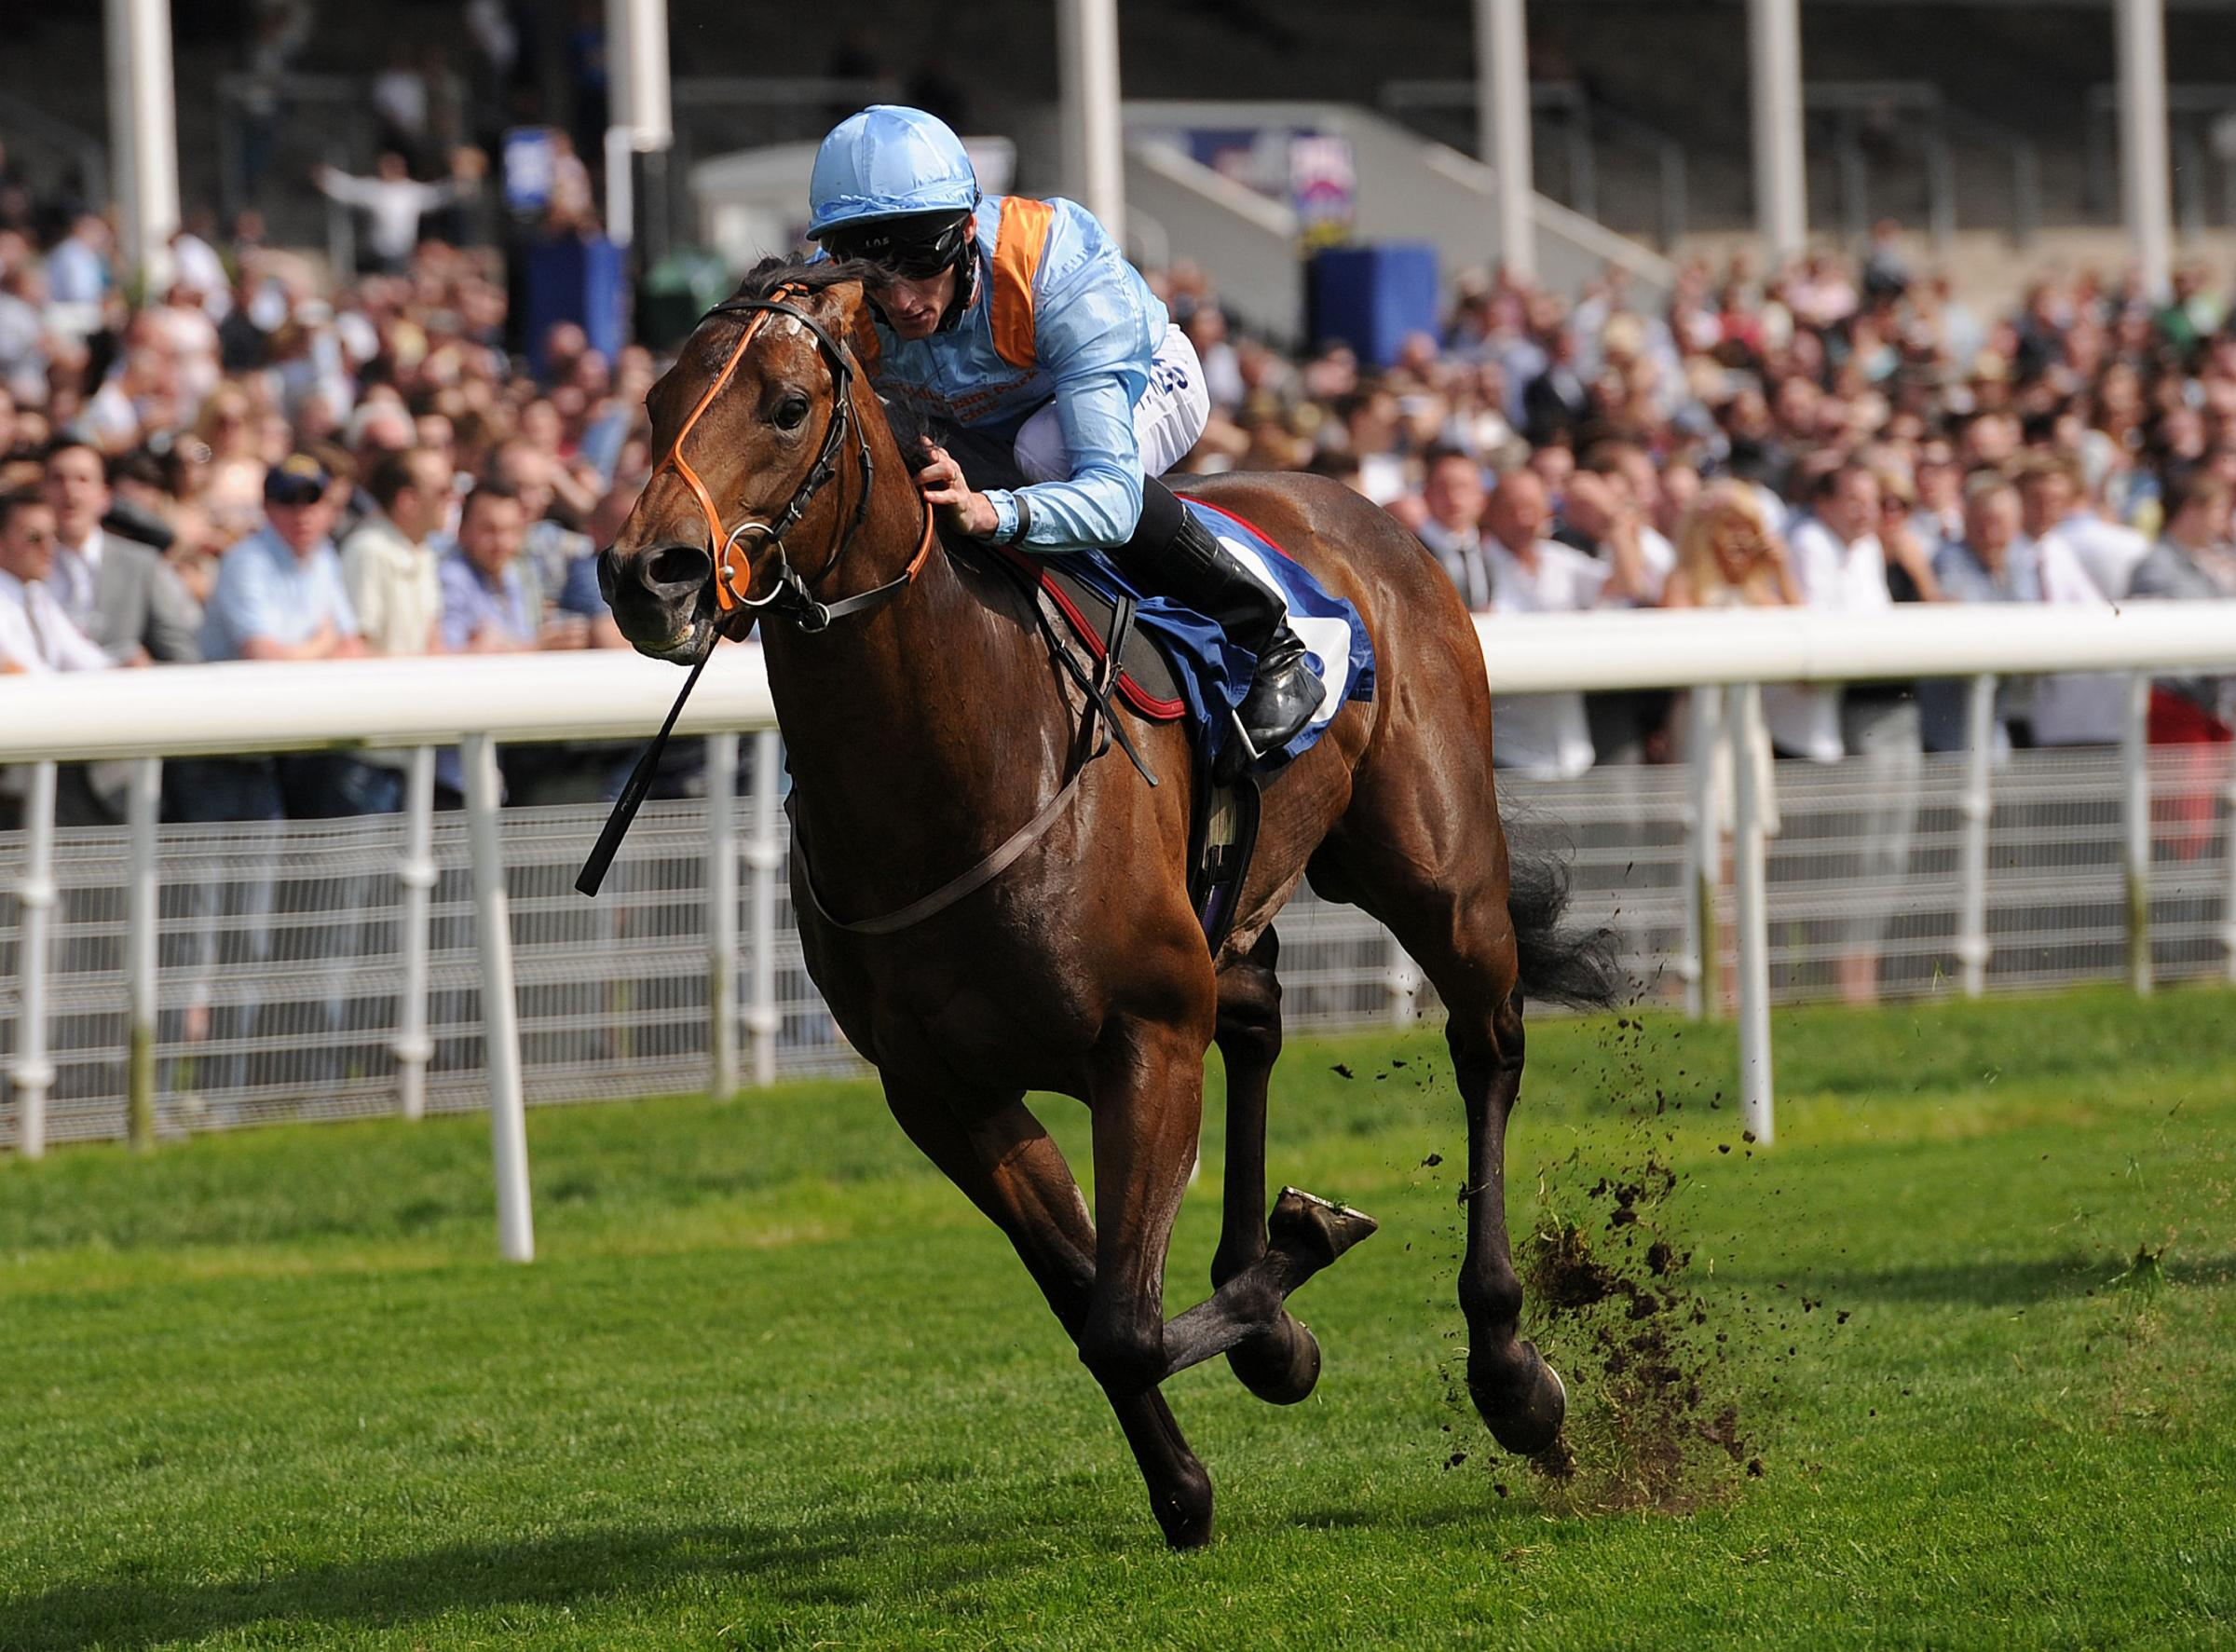 All eyes on Newbury after York excitement